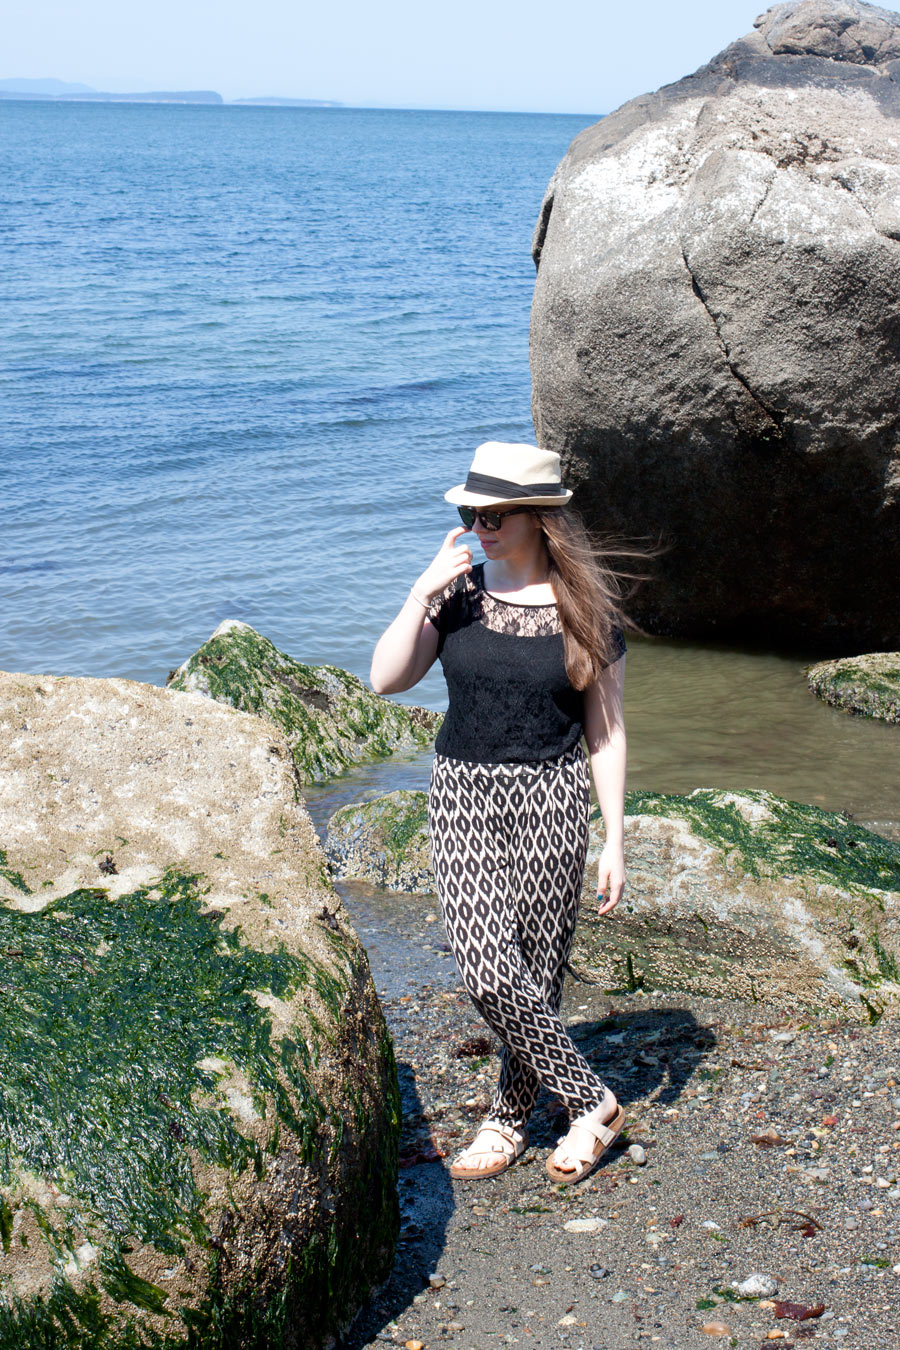 Lace, Track Pant, Fedora / Summer Beach Look / hellorigby!